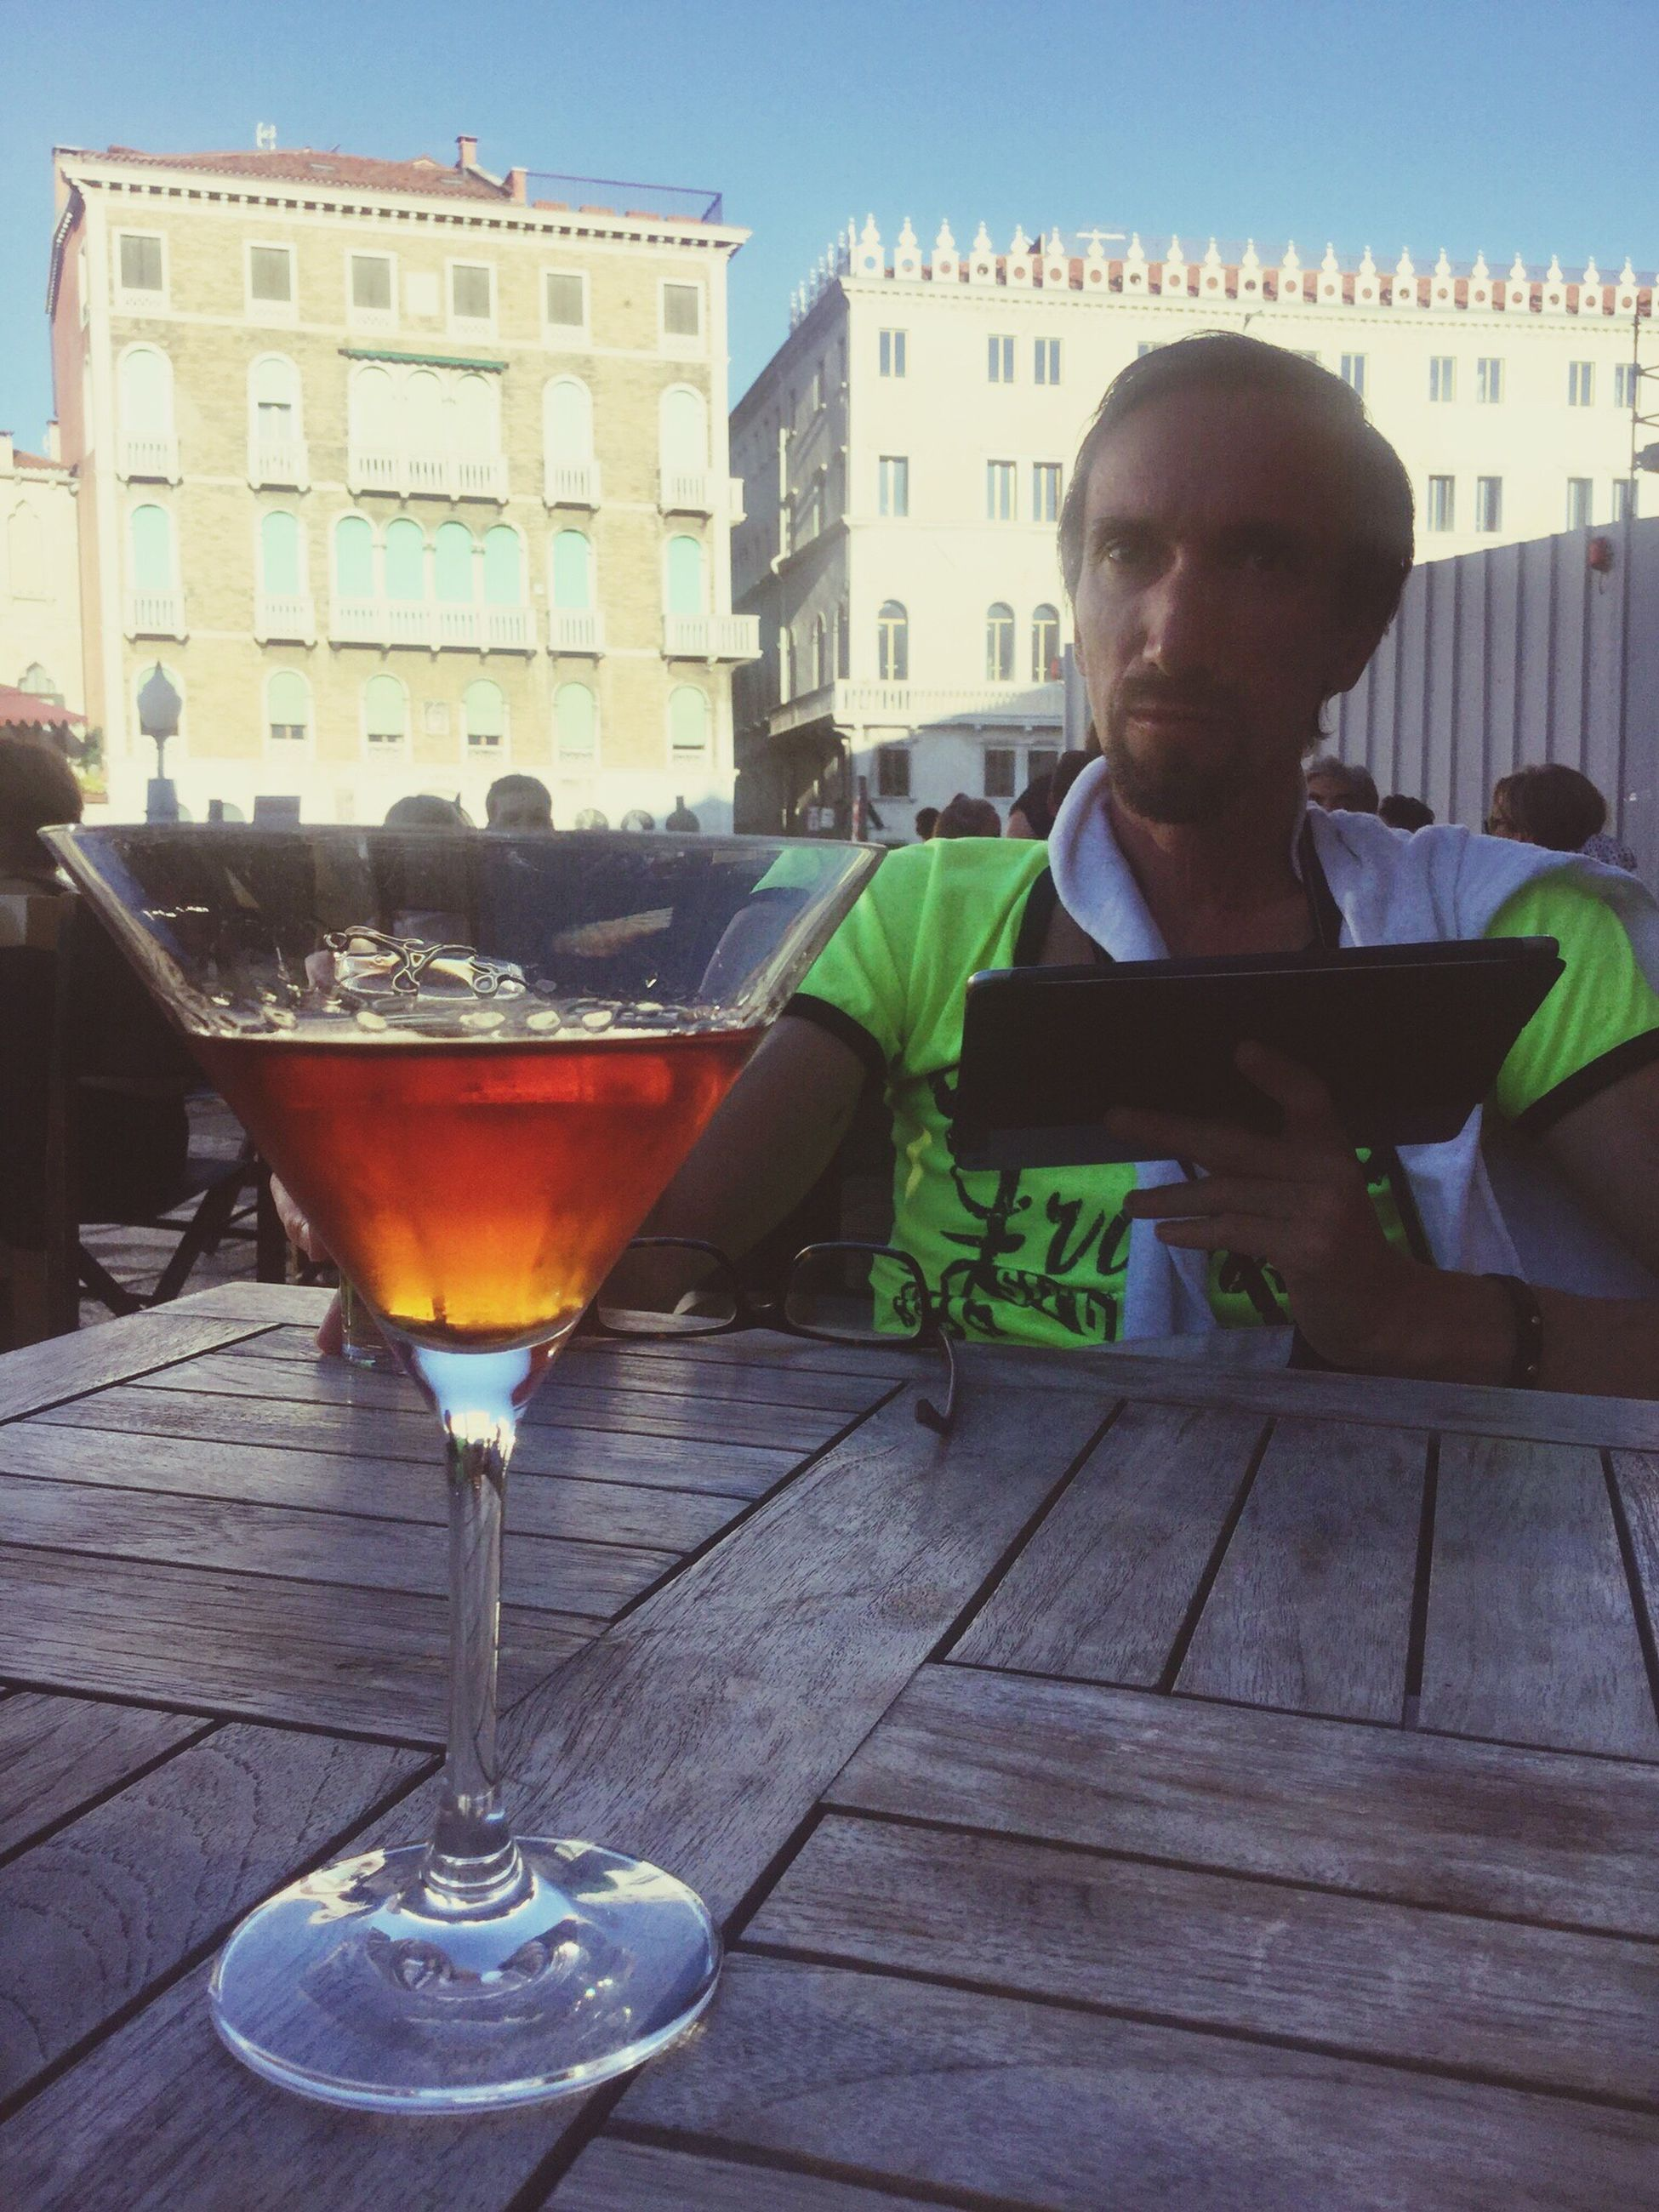 food and drink, city, architecture, city life, drink, building exterior, one person, cocktail, day, cityscape, freshness, people, martini glass, outdoors, adult